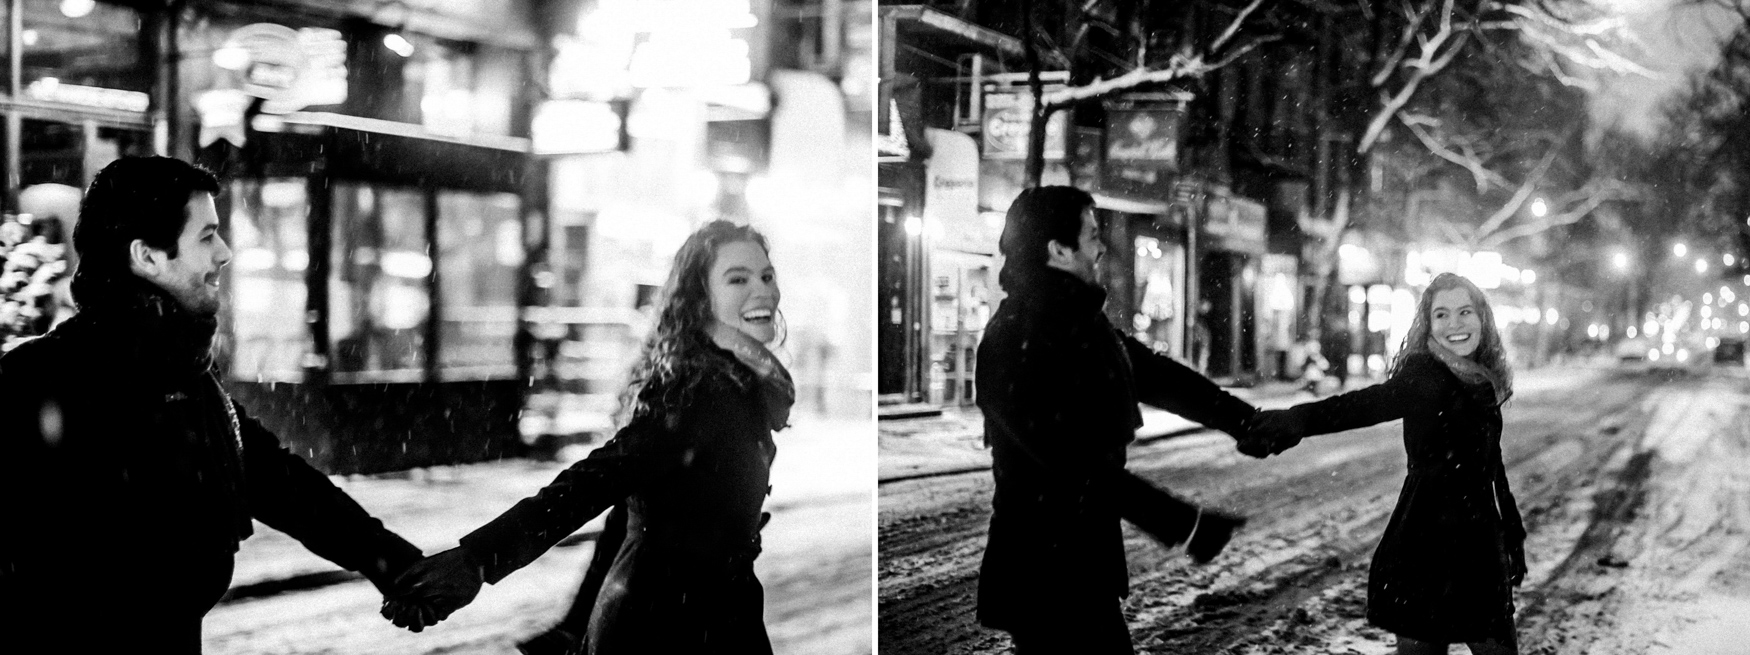 nyc winter snowy manthattan engagement session 036.jpg